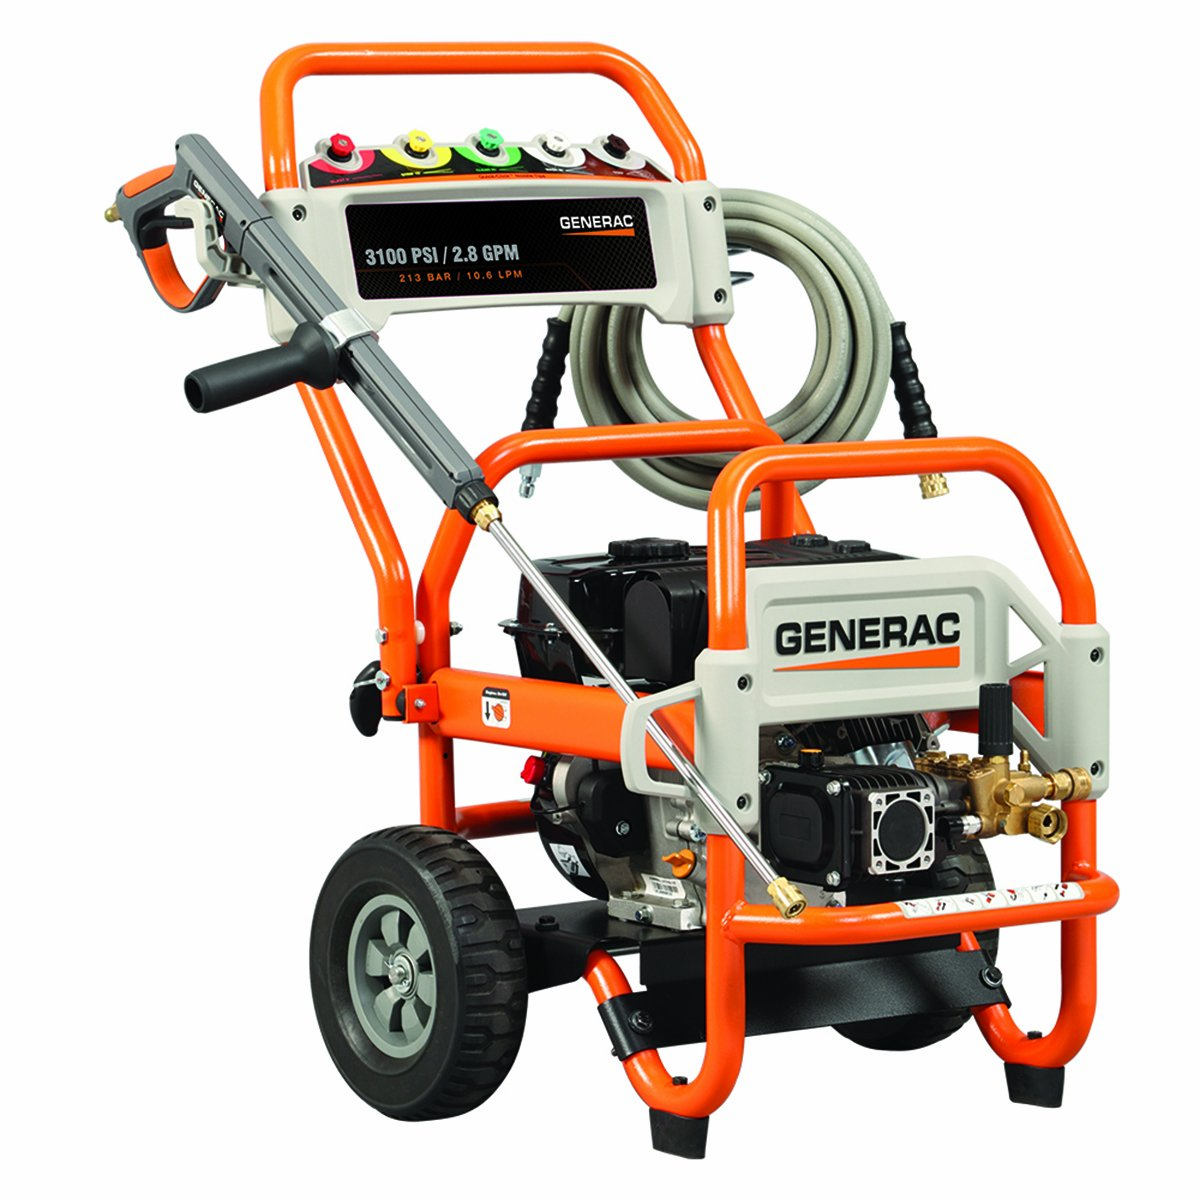 Amazon.com : Generac 5993 3, 100 PSI 2.8 GPM 212cc OHV Gas Powered Pressure  Washer (Discontinued by Manufacturer) : Garden & Outdoor